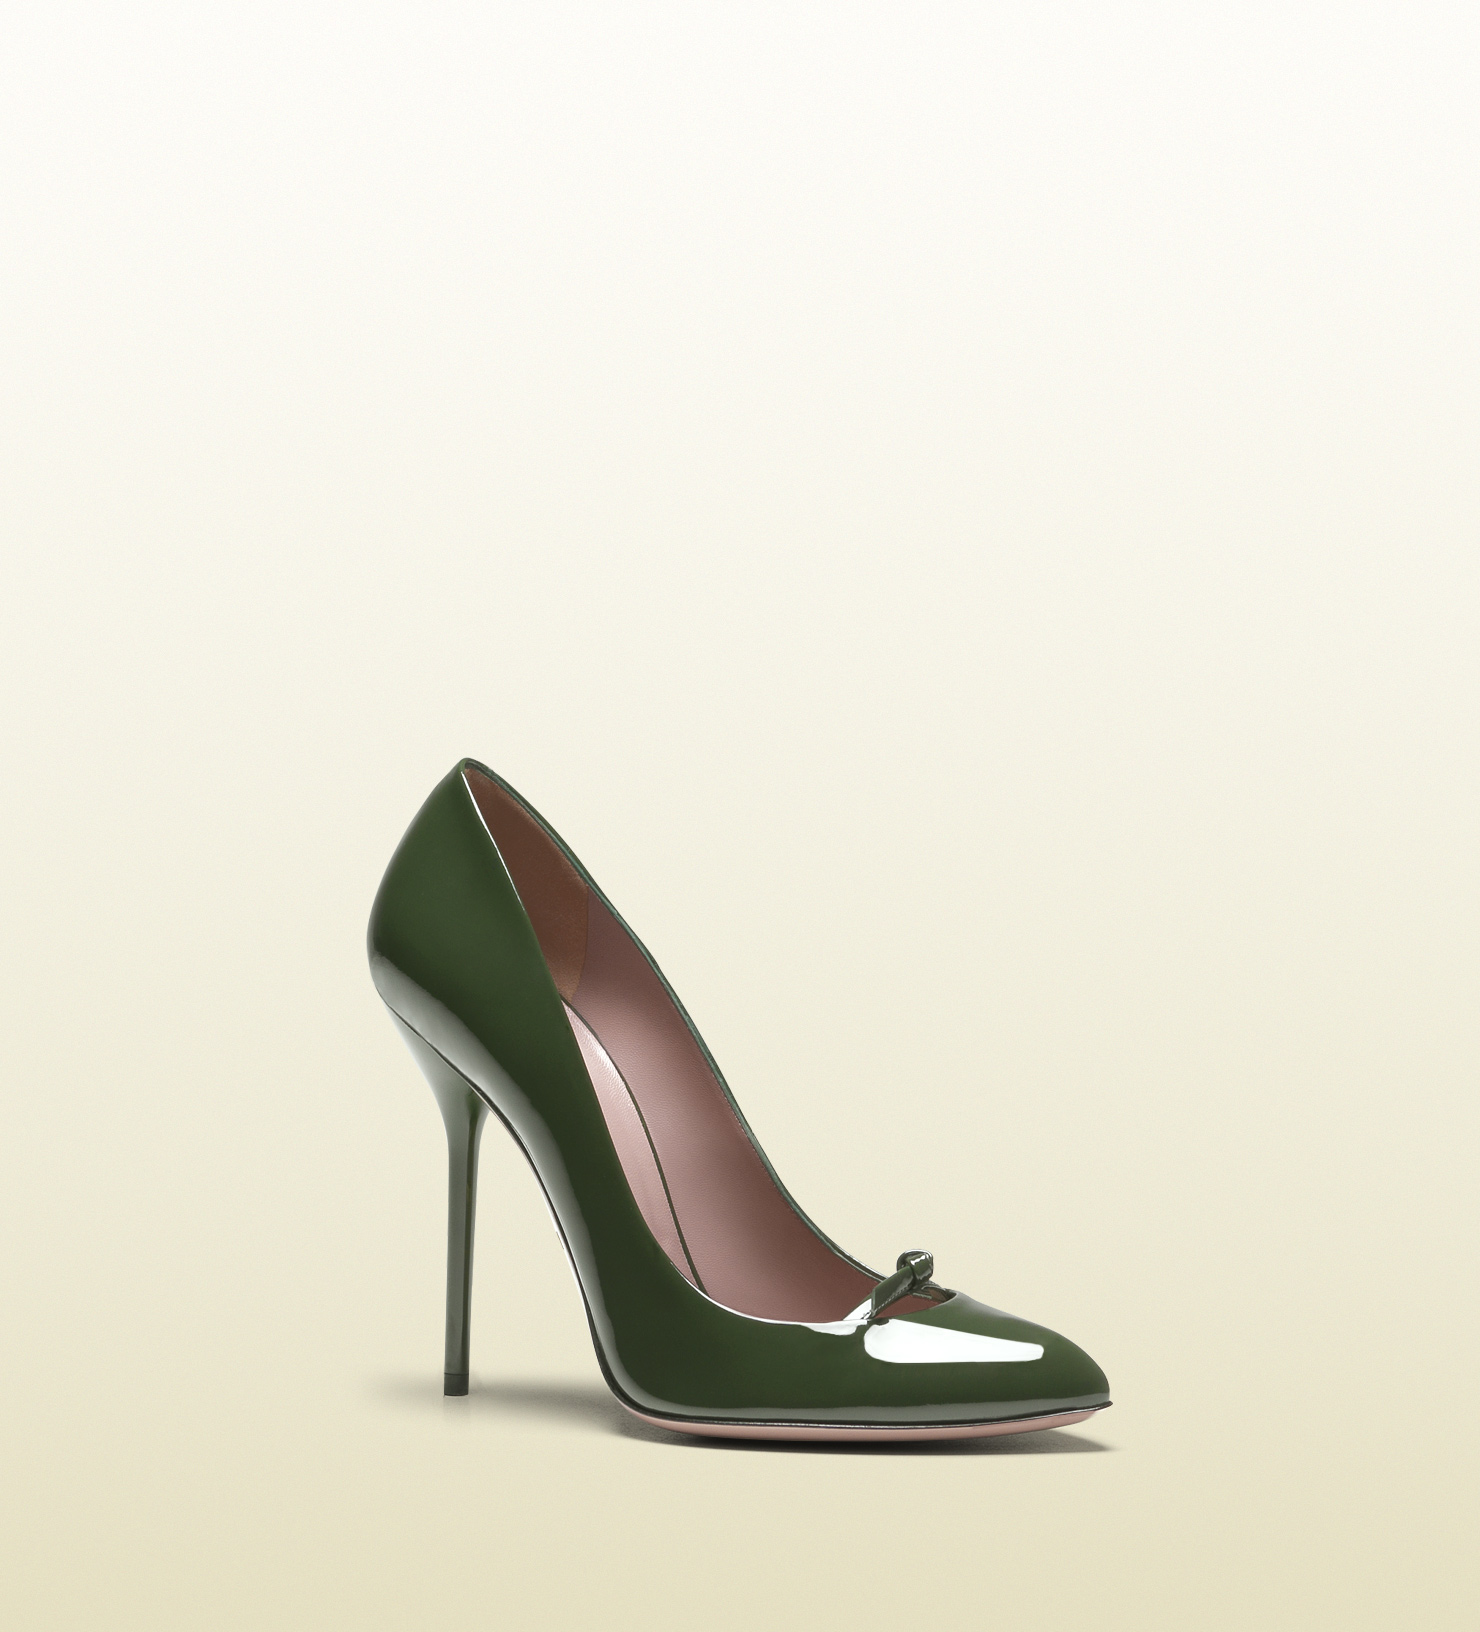 473a0ab982f4 Lyst - Gucci Beverly Patent Leather High Heel Pump in Green